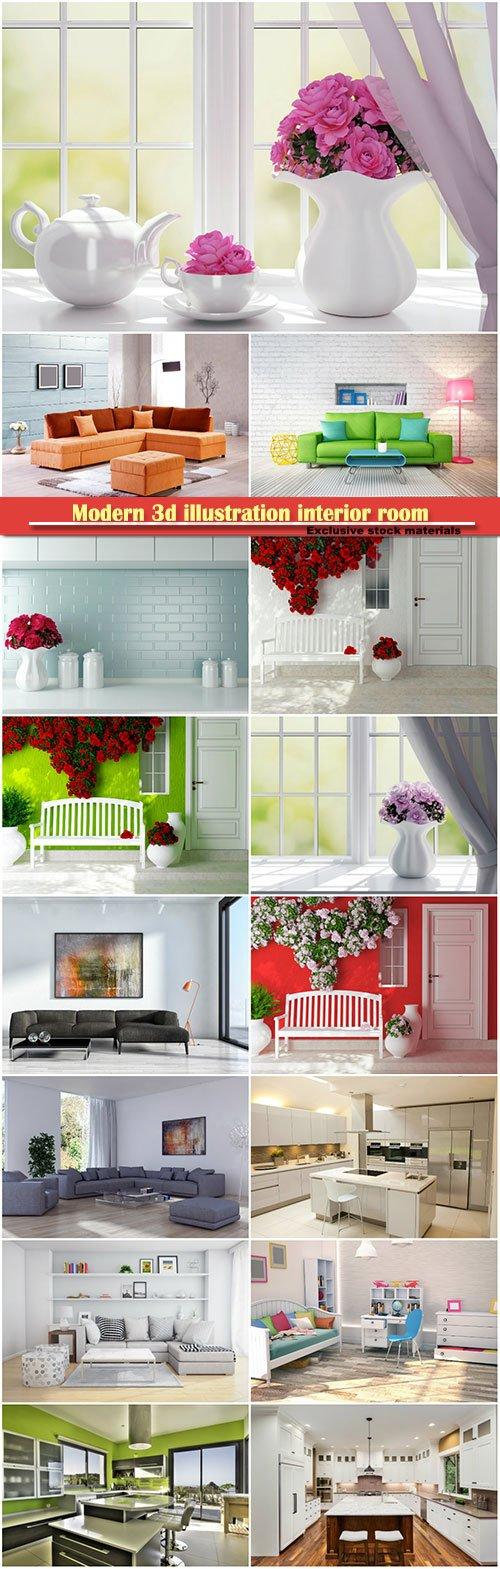 Modern 3d illustration interior room with a beautiful furniture, living room with shelves and sofa with pillows